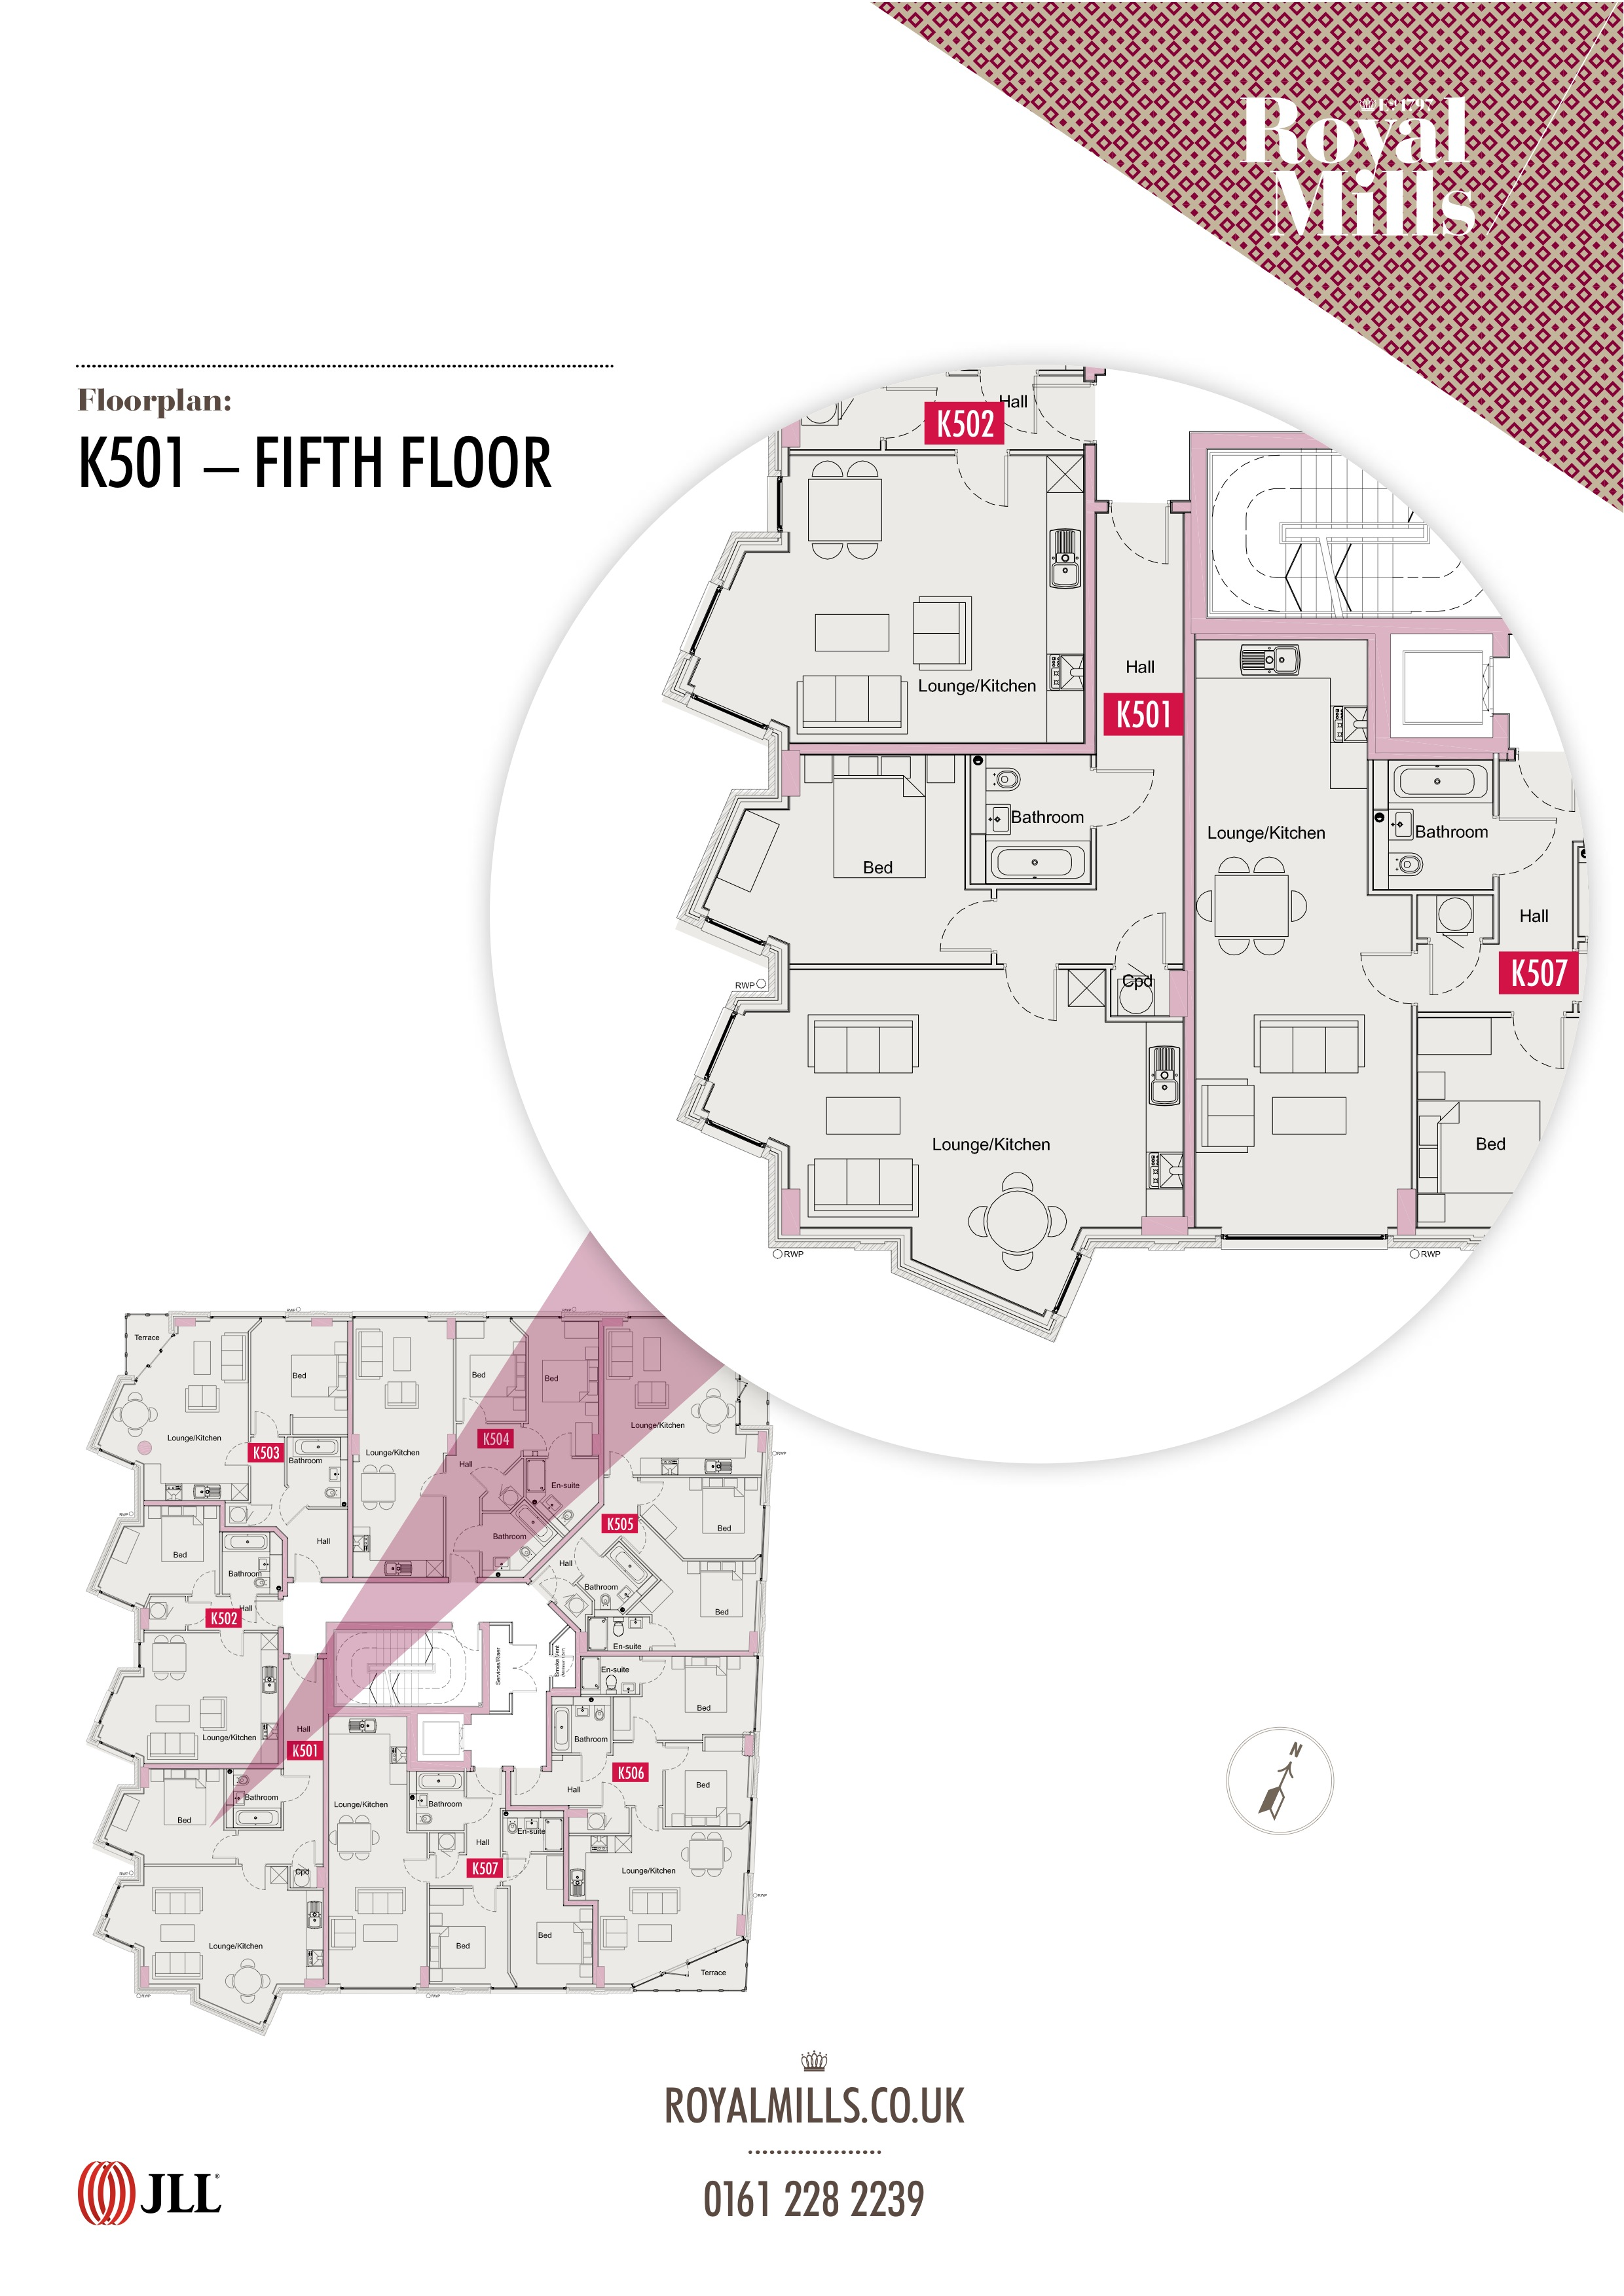 Kennedy Building Floor Plans Royal Mills Manchester